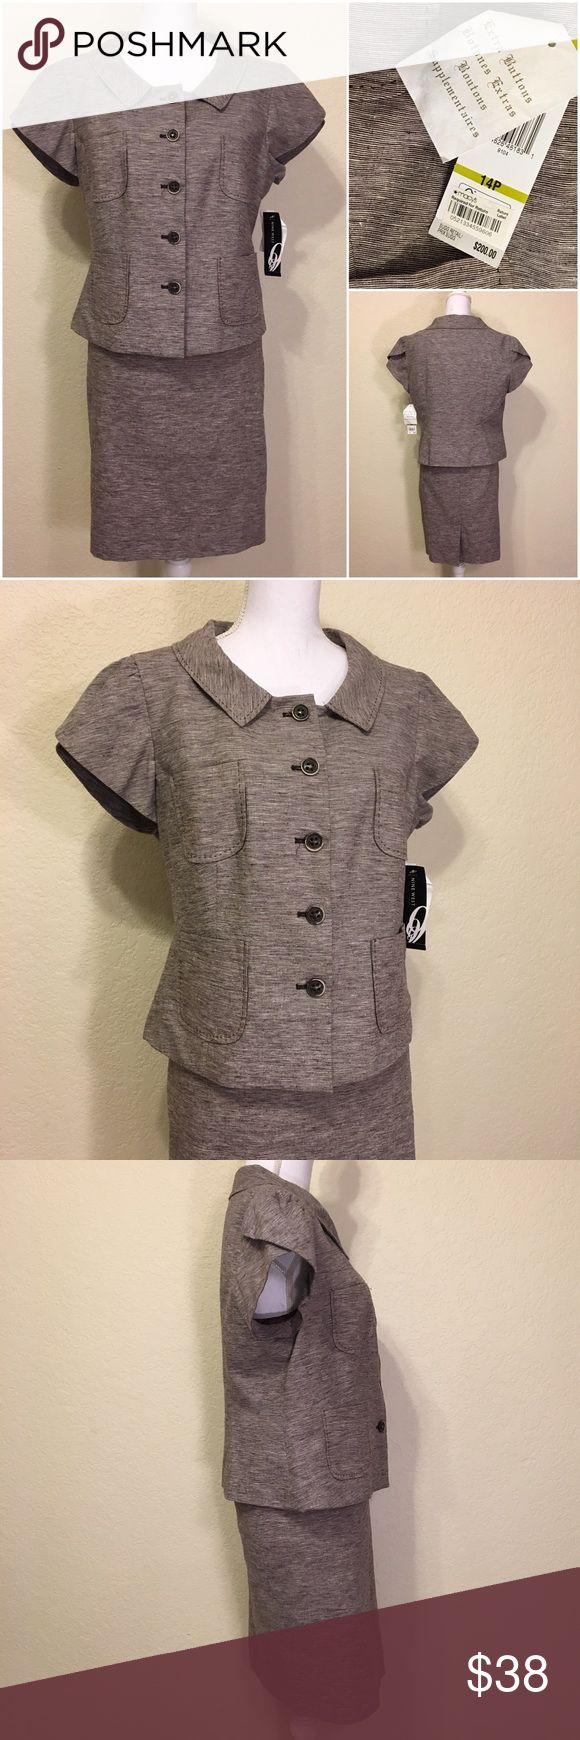 """NWT Nine West Brown & Cream Skirt Suit Set Size 14P.  MSRP $200.  Cocoa & ivory striped.  Body: 54% linen, 44% cotton, 2% spandex.  Lining: 100% polyester.  Dry clean only.      Jacket - Brown contrast stitching.  Petal sleeves.  Tortoise shell button front.  Two breast and front pockets.  Lined.  Length shoulder to hem: 21.5"""".  Bust: 40"""".  Waist: 40"""".  Hips: 42"""".  Shoulder width: 16.5"""".  Sleeve length: 5"""".       Skirt – Back skirt slit.  Length: 21"""".  Waist: 34"""".  Hips: 42"""".  Bottom of…"""